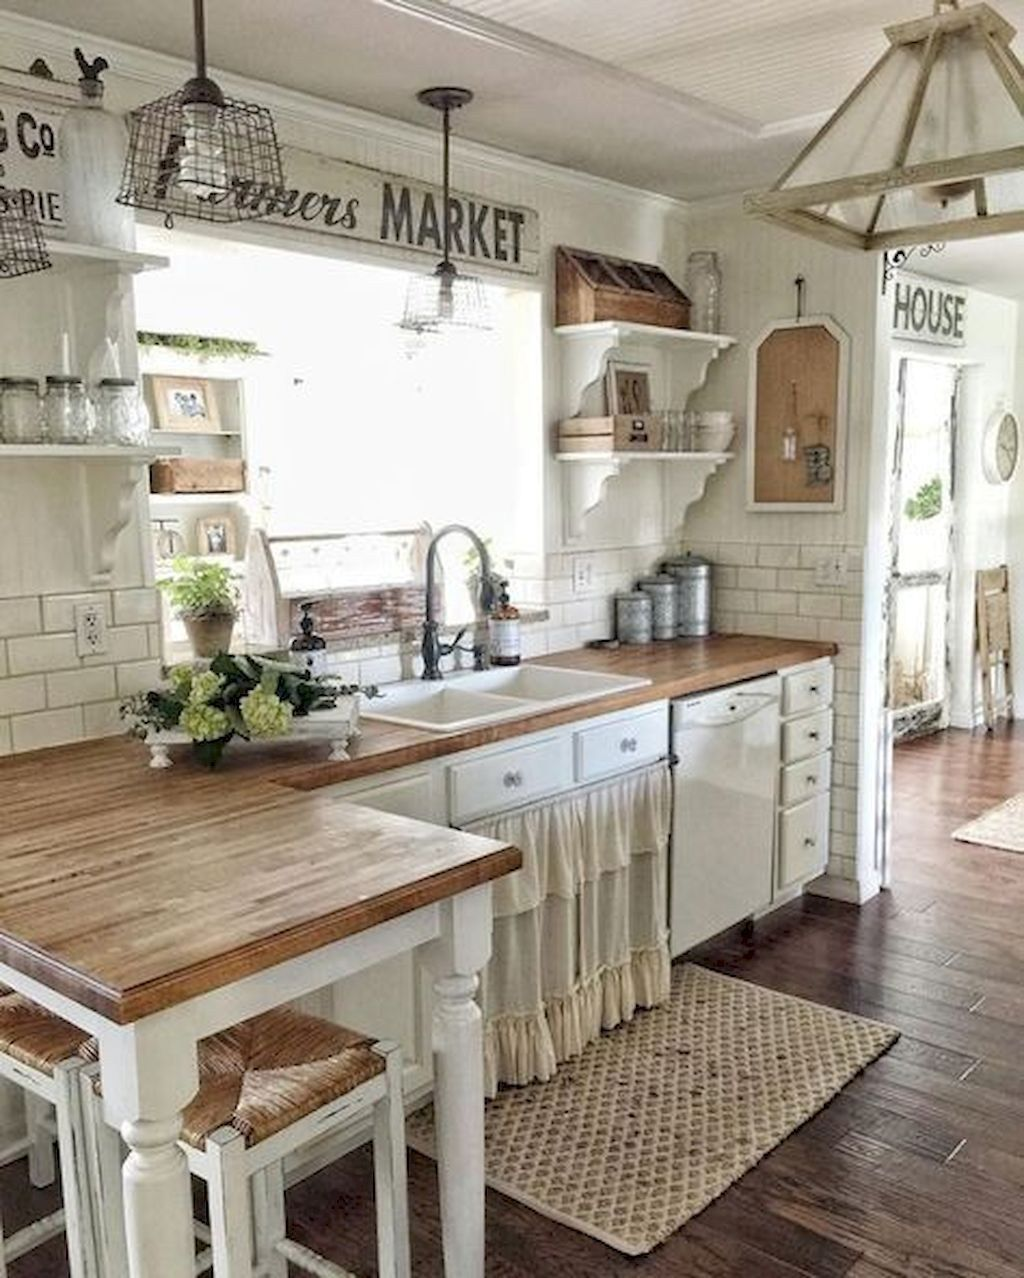 Best Ideas To Decorating A Farmhouse Kitchen 17  Cuisine rustique